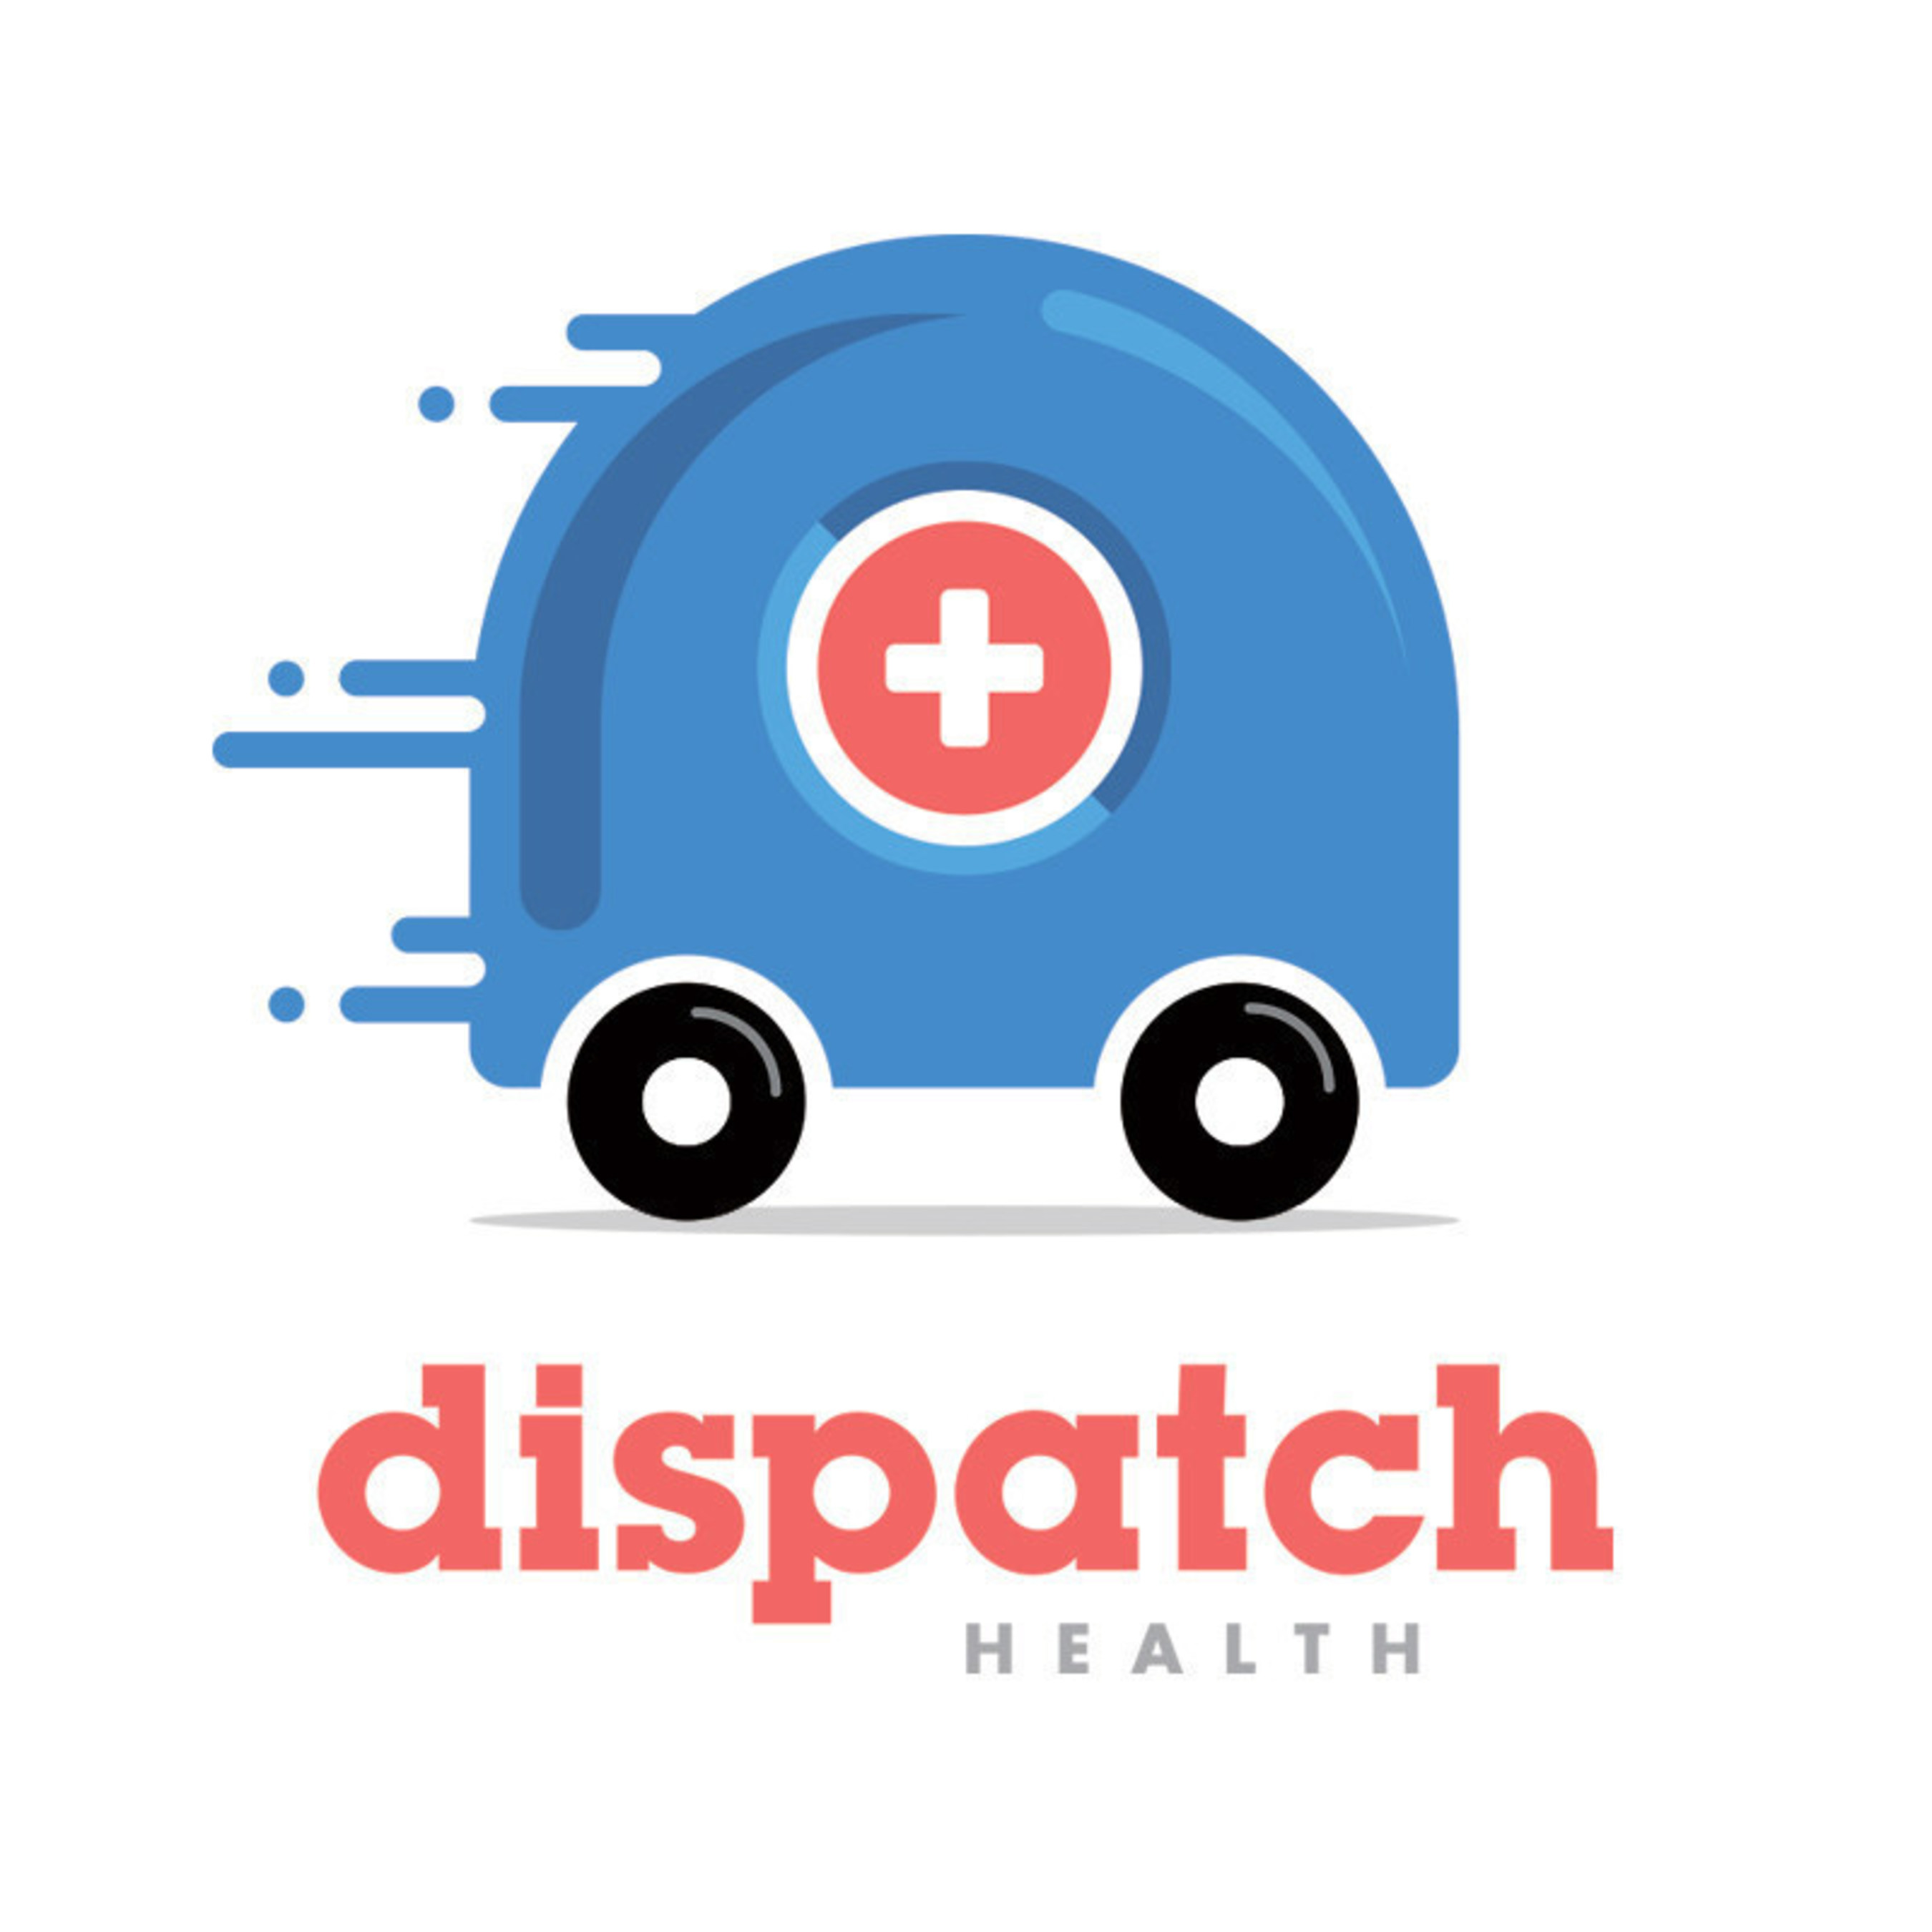 DispatchHealth is redefining healthcare through a unique on-demand mobile, onsite, acute-care delivery model that is high tech and low cost. DispatchHealth delivers care through multiple channels, including local municipalities and 911-first response systems, health systems, in partnership with employers, payers, and for senior care facilities.  The veteran leadership team at DispatchHealth brings together the best startup, clinical and engineering skills to execute on this unique business model. For more information, visit www.DispatchHealth.com.